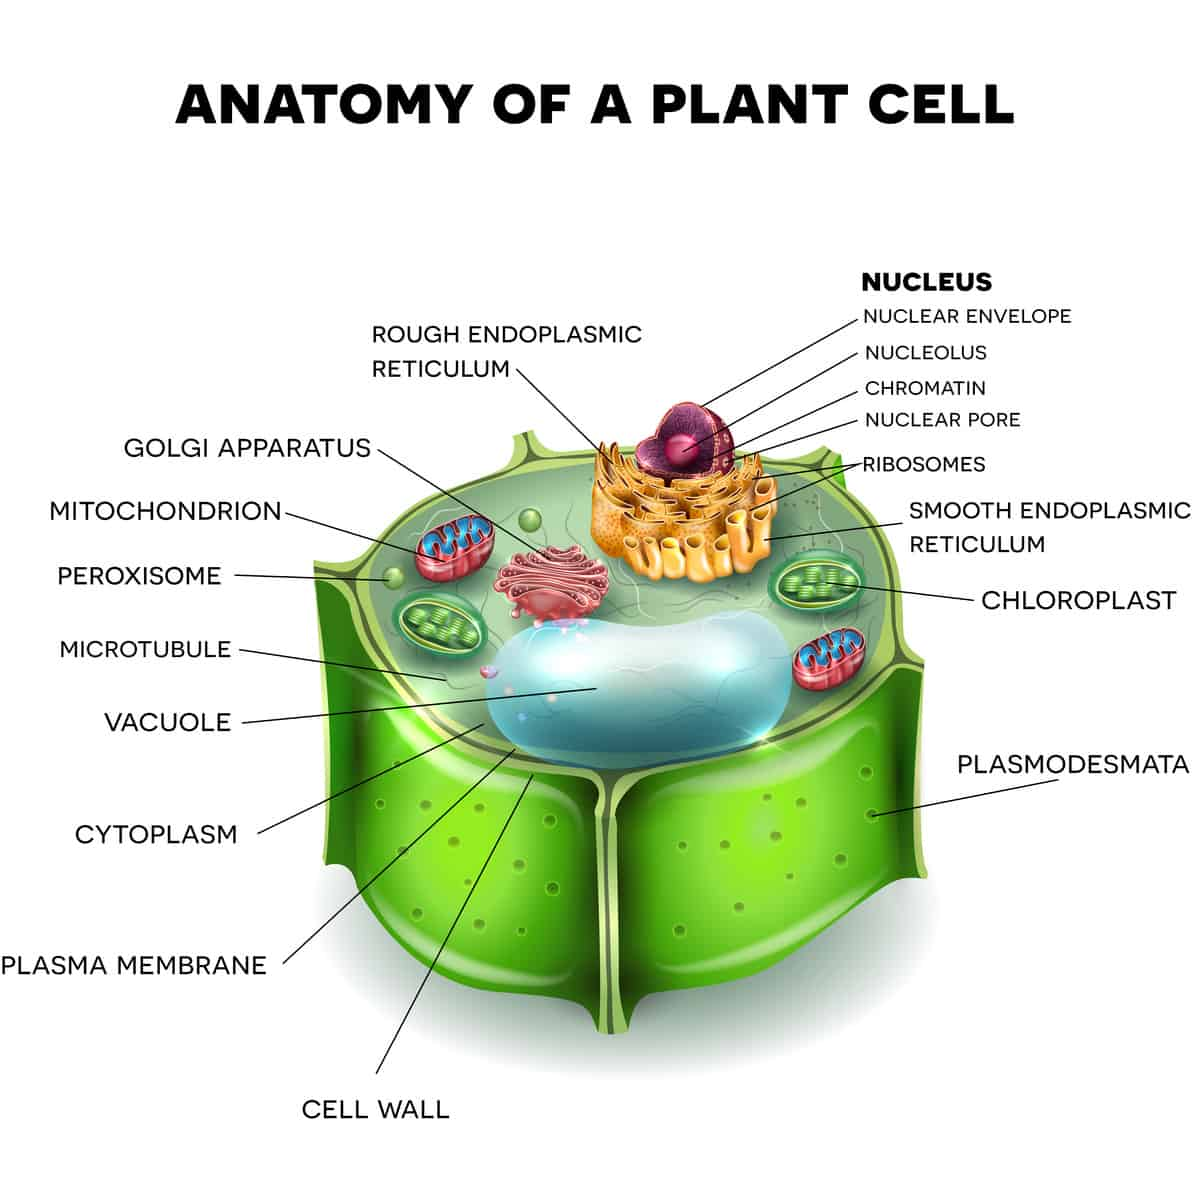 17 Parts Of A Flower Explained With Detailed Diagram Simple Animal Cell Labels For Kids Illustration Plant